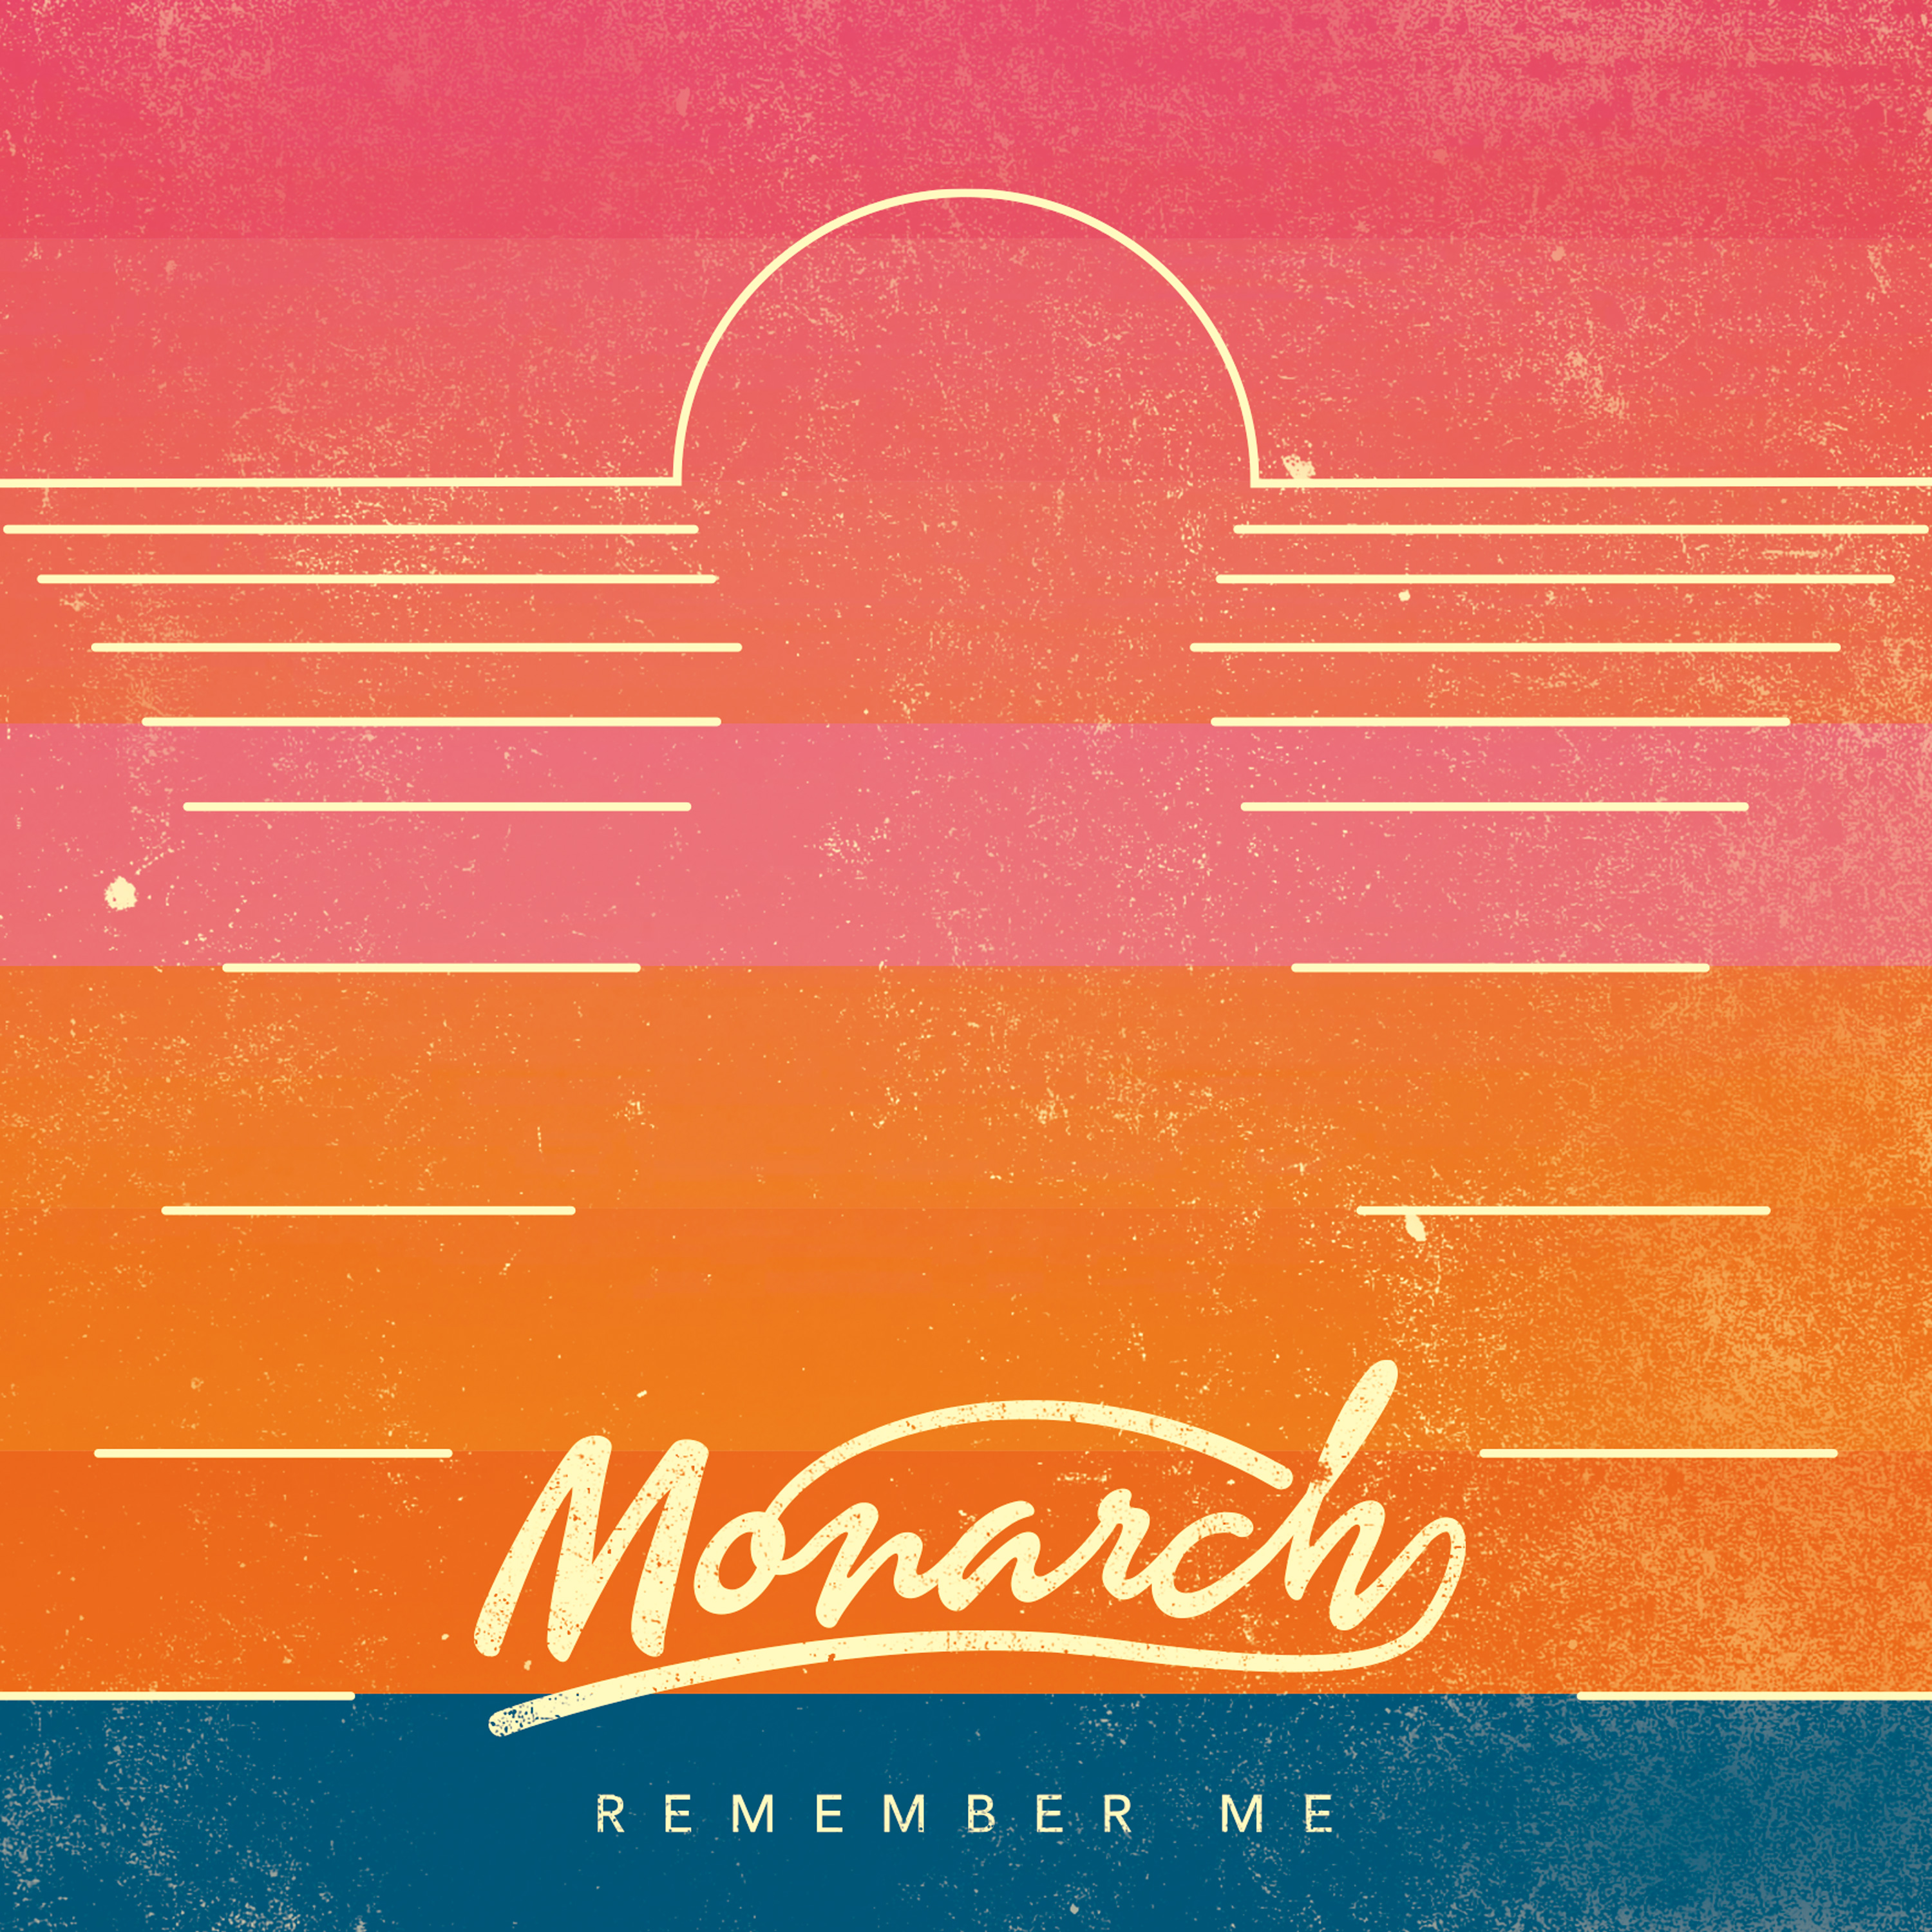 MONARCH_REMEMBER-ME_final